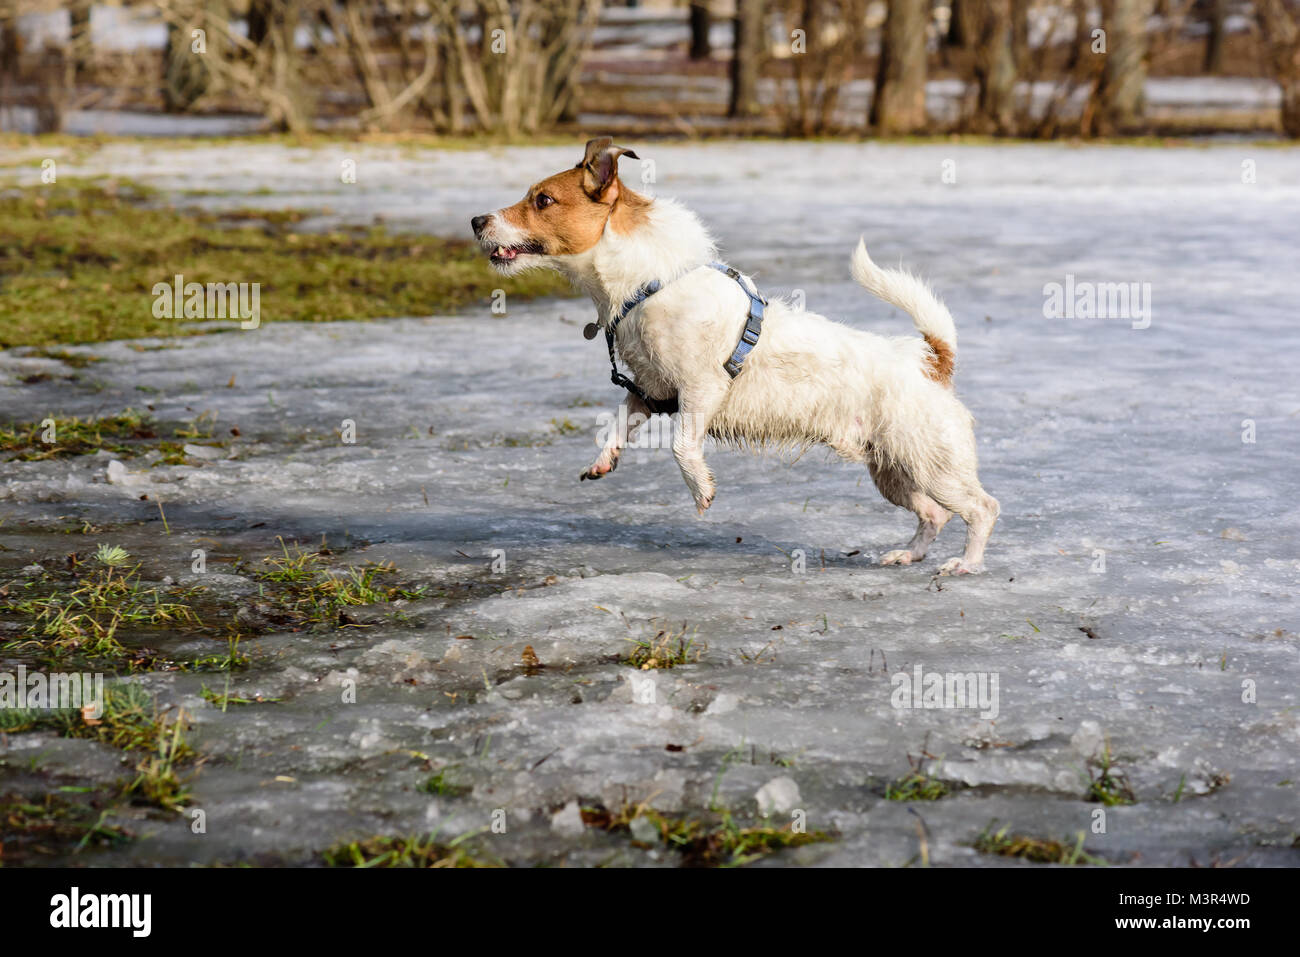 Fluffy dog playing on melting snow at spring park - Stock Image